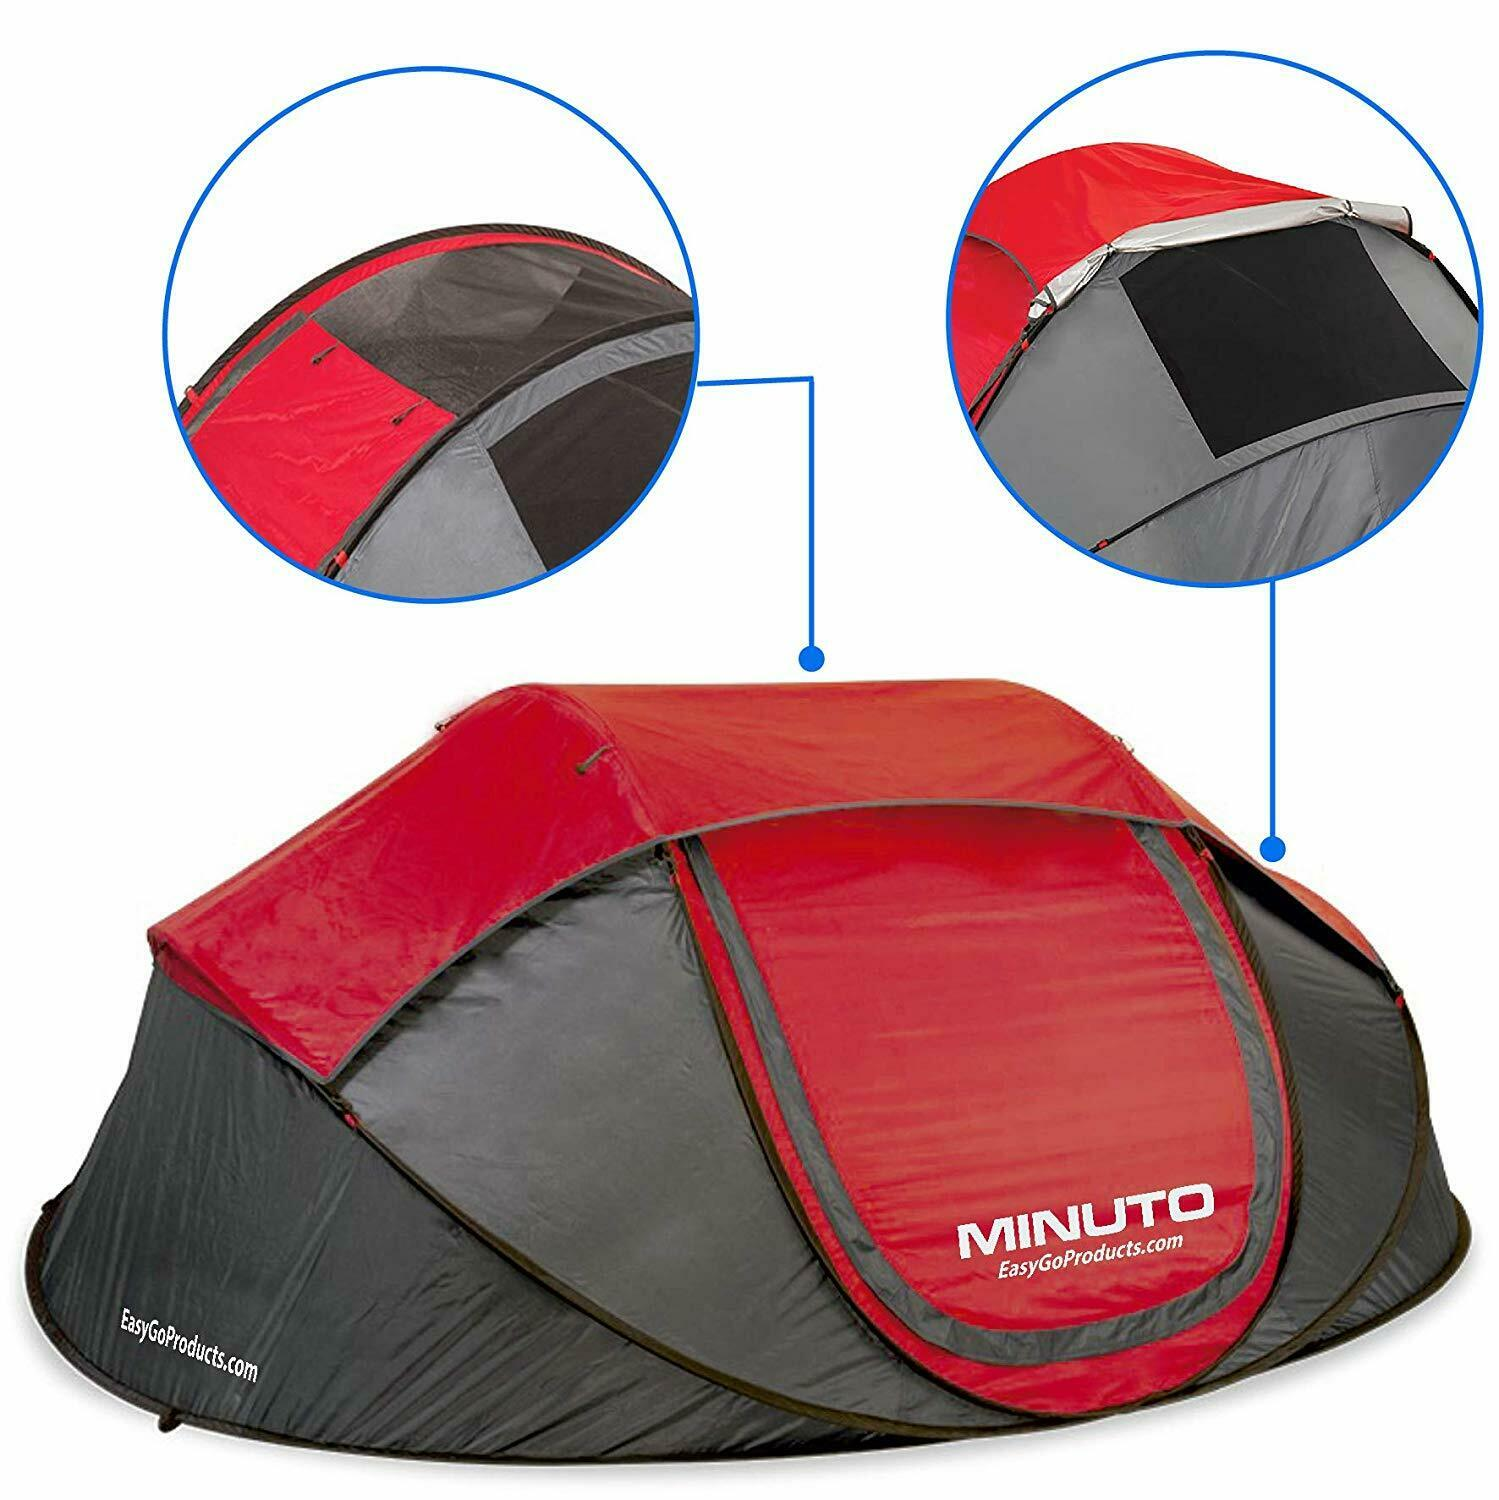 4 Person Easy Set Up Cabin Instant Pop Up Dome Waterproof Hiking Camping Tent